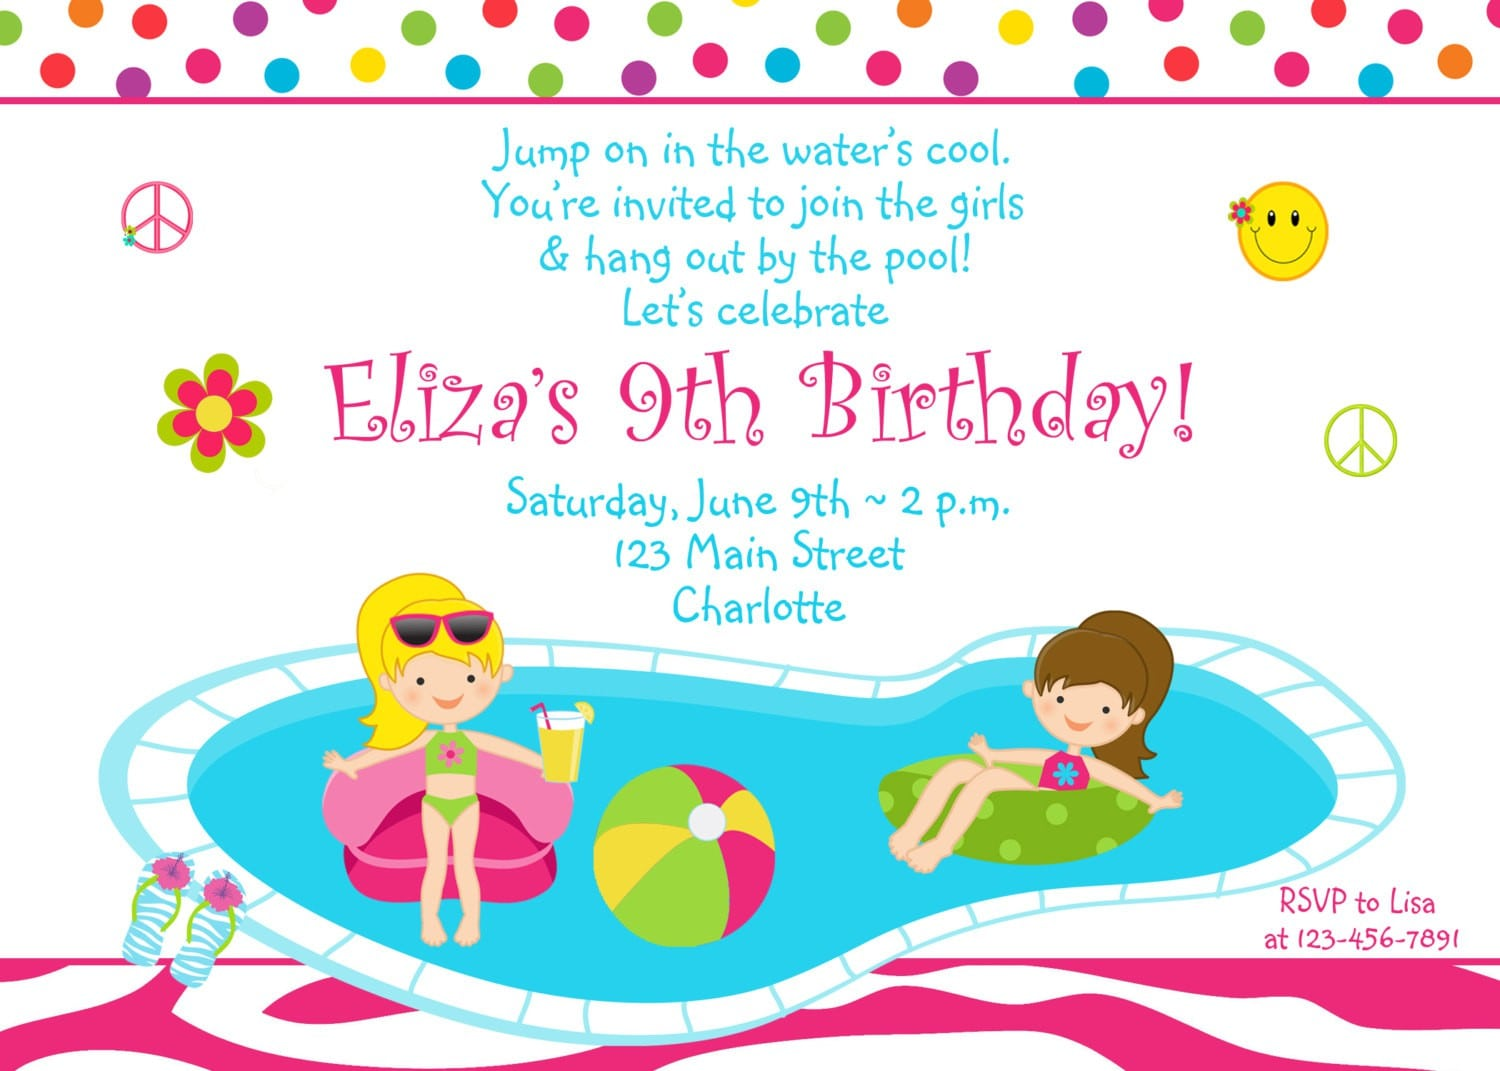 Kids birthday party invitation sample kids birthday party invitation sample 4 400 x 285 640 x 457 1500 x 1071 stopboris Image collections